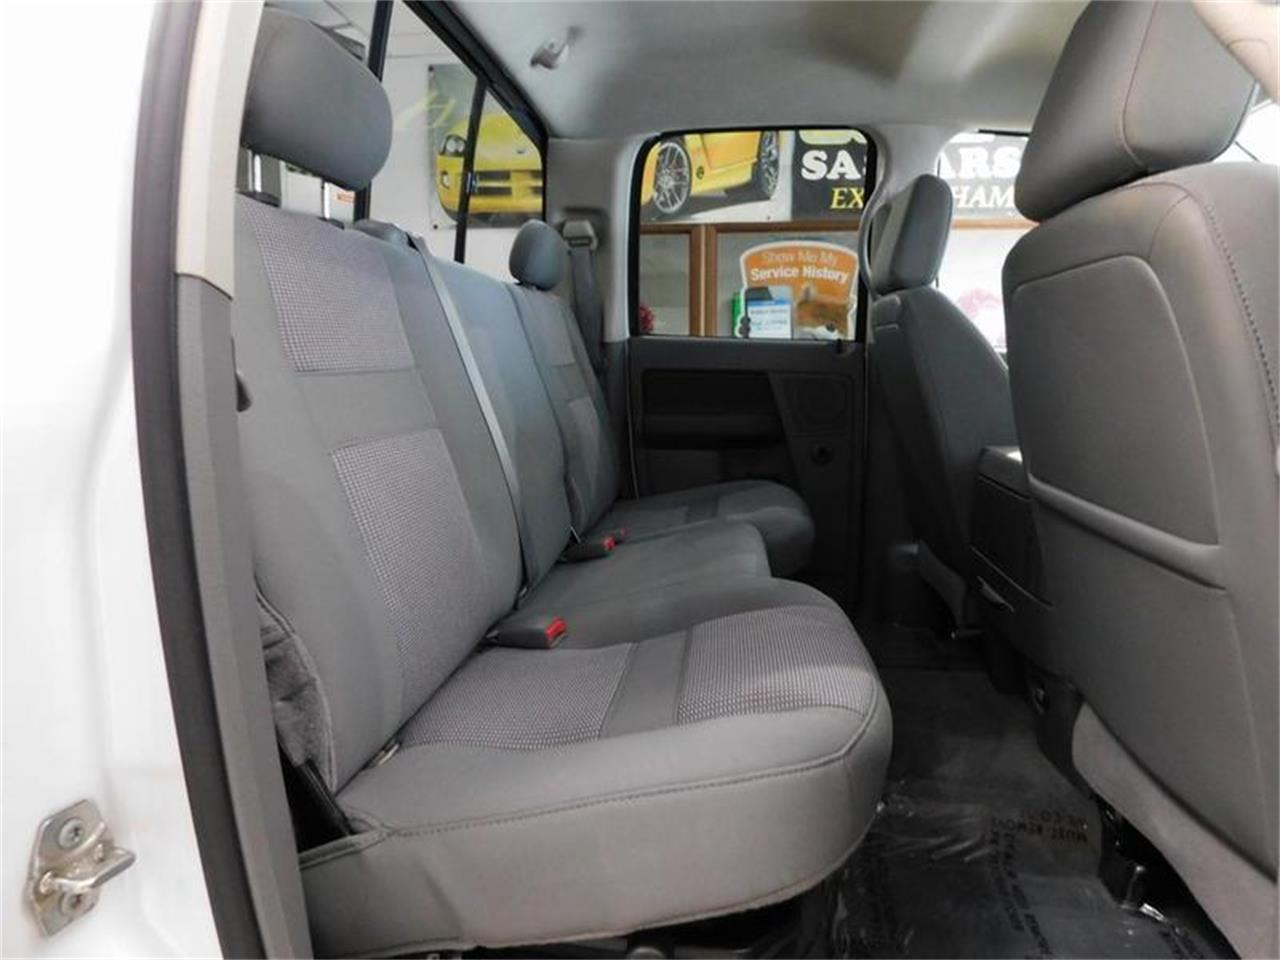 2009 Dodge Ram 3500 for sale in Hamburg, NY – photo 22